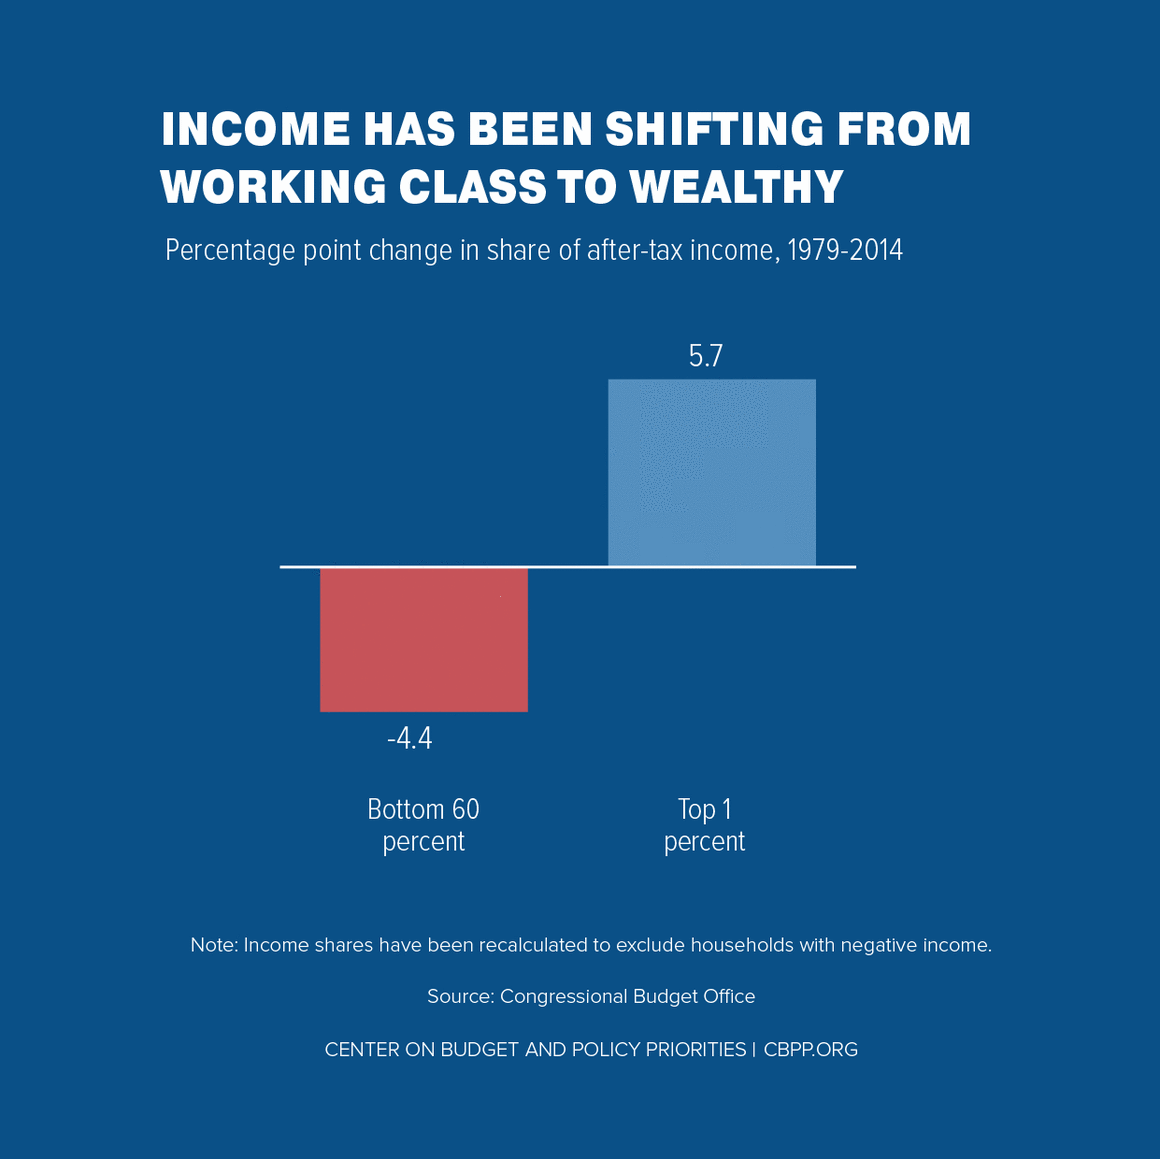 Income Has Been Shifting From Working Class to Wealthy